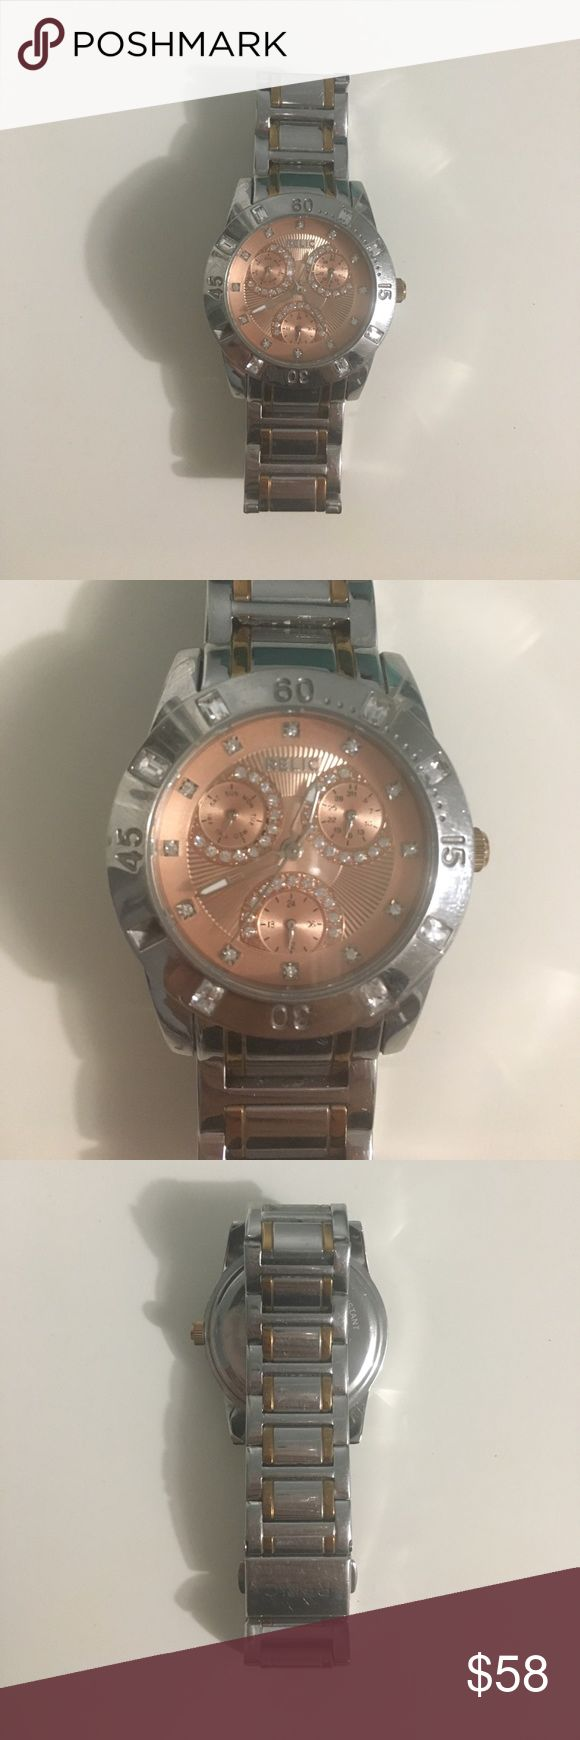 Rose gold Stainless steel RELIC watch Excellent condition, stainless steel, water resistant, works perfectly, no missing stones, not rusted or damaged Relic Jewelry